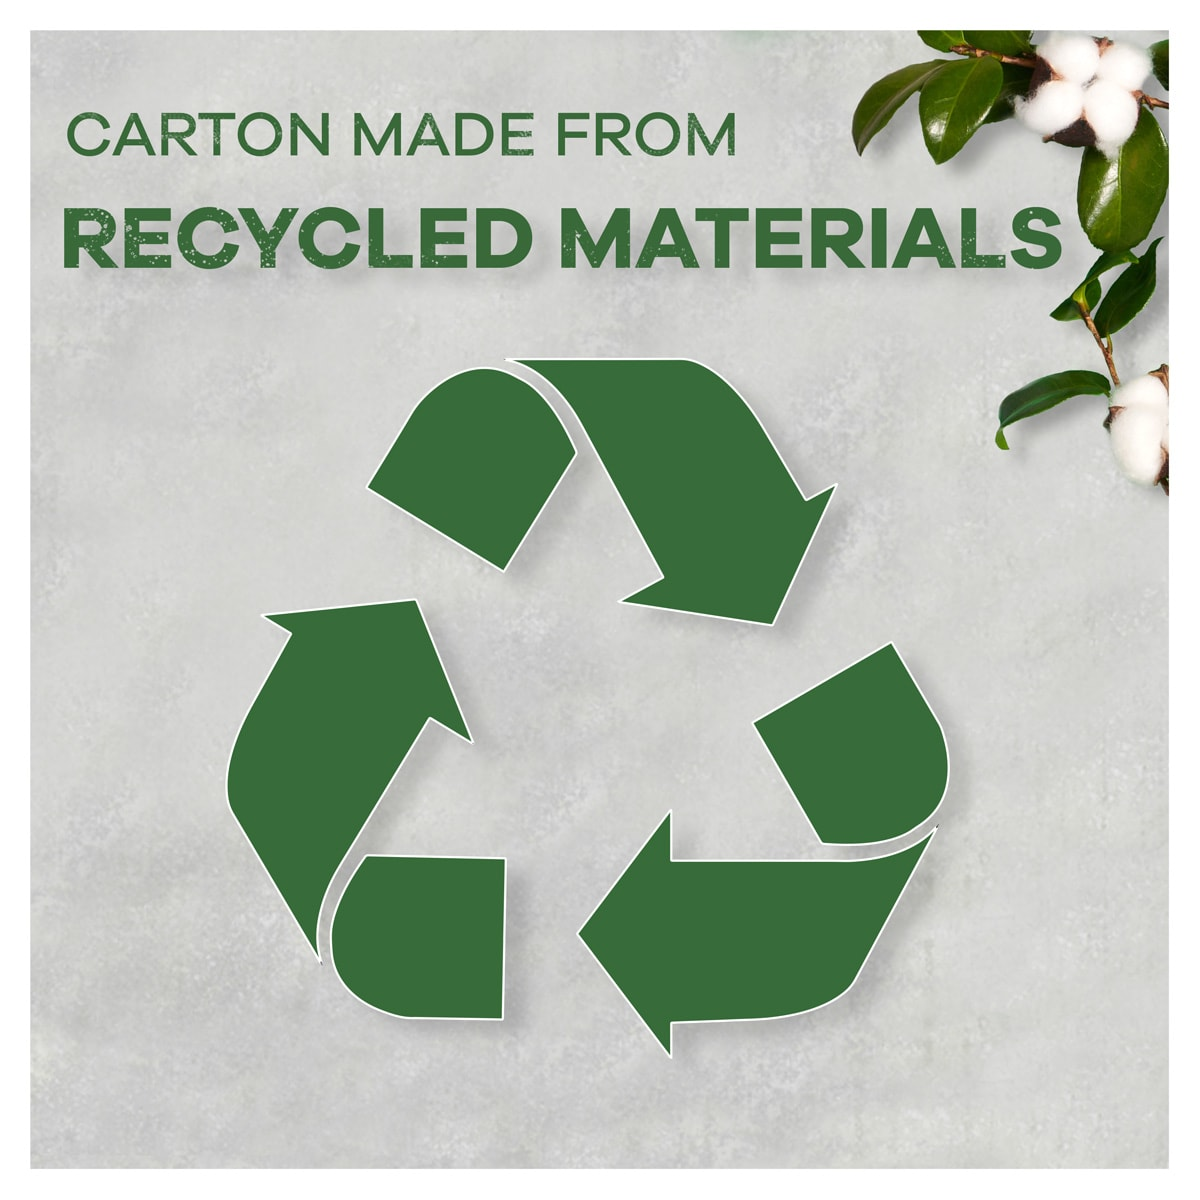 Carton made from recycled materials